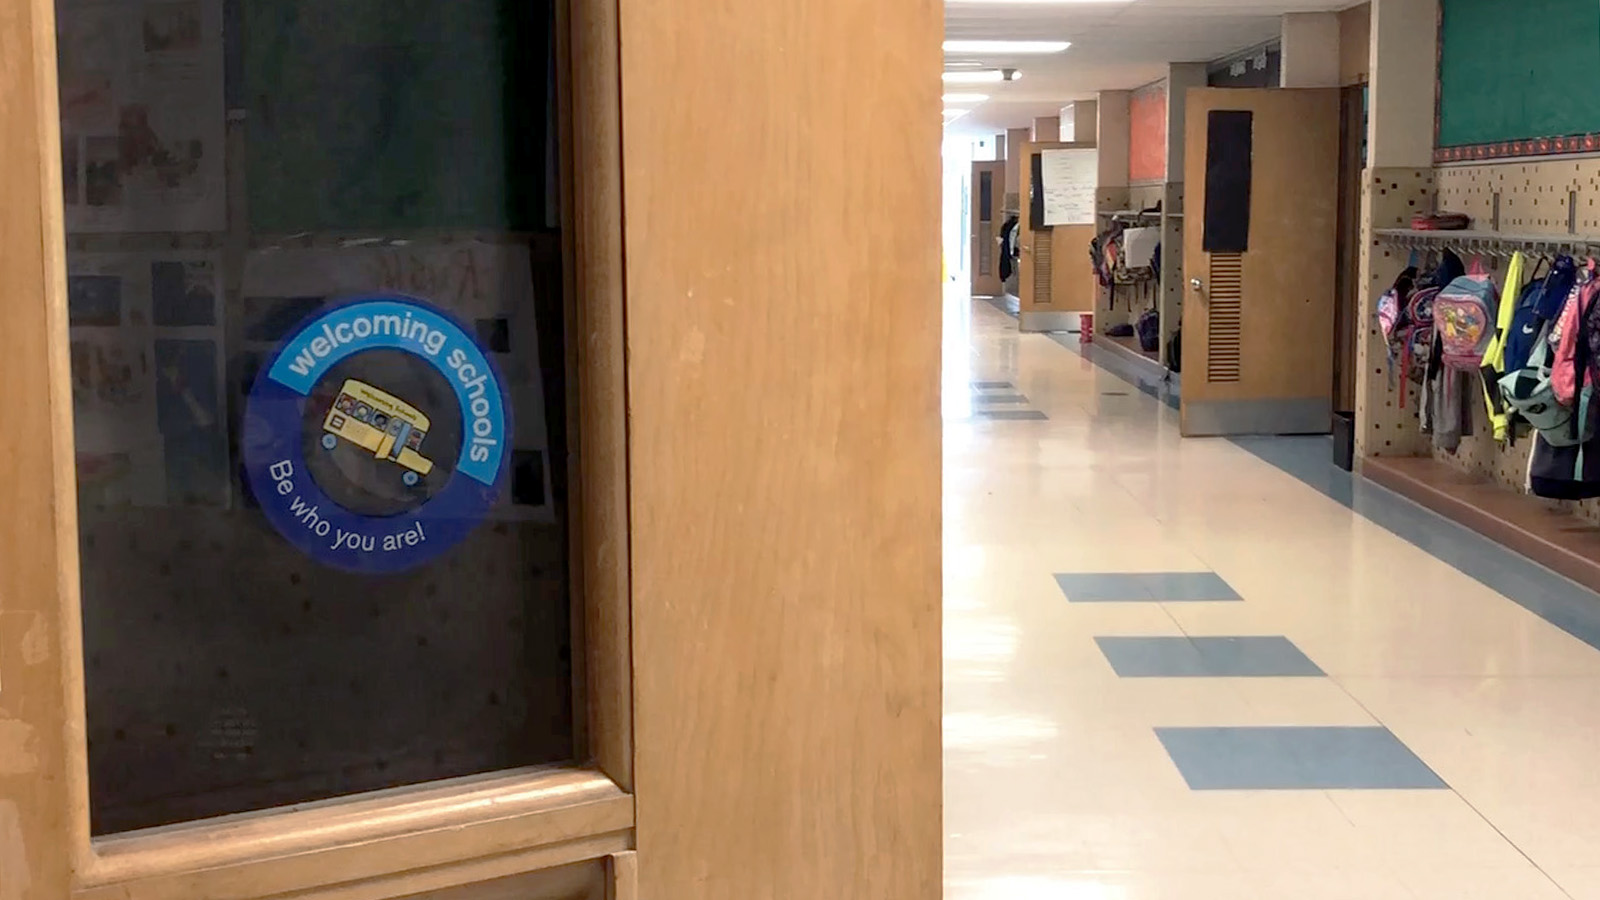 Two Wisconsin Elementary Schools Receive HRC's Welcoming Schools Seal of Excellence